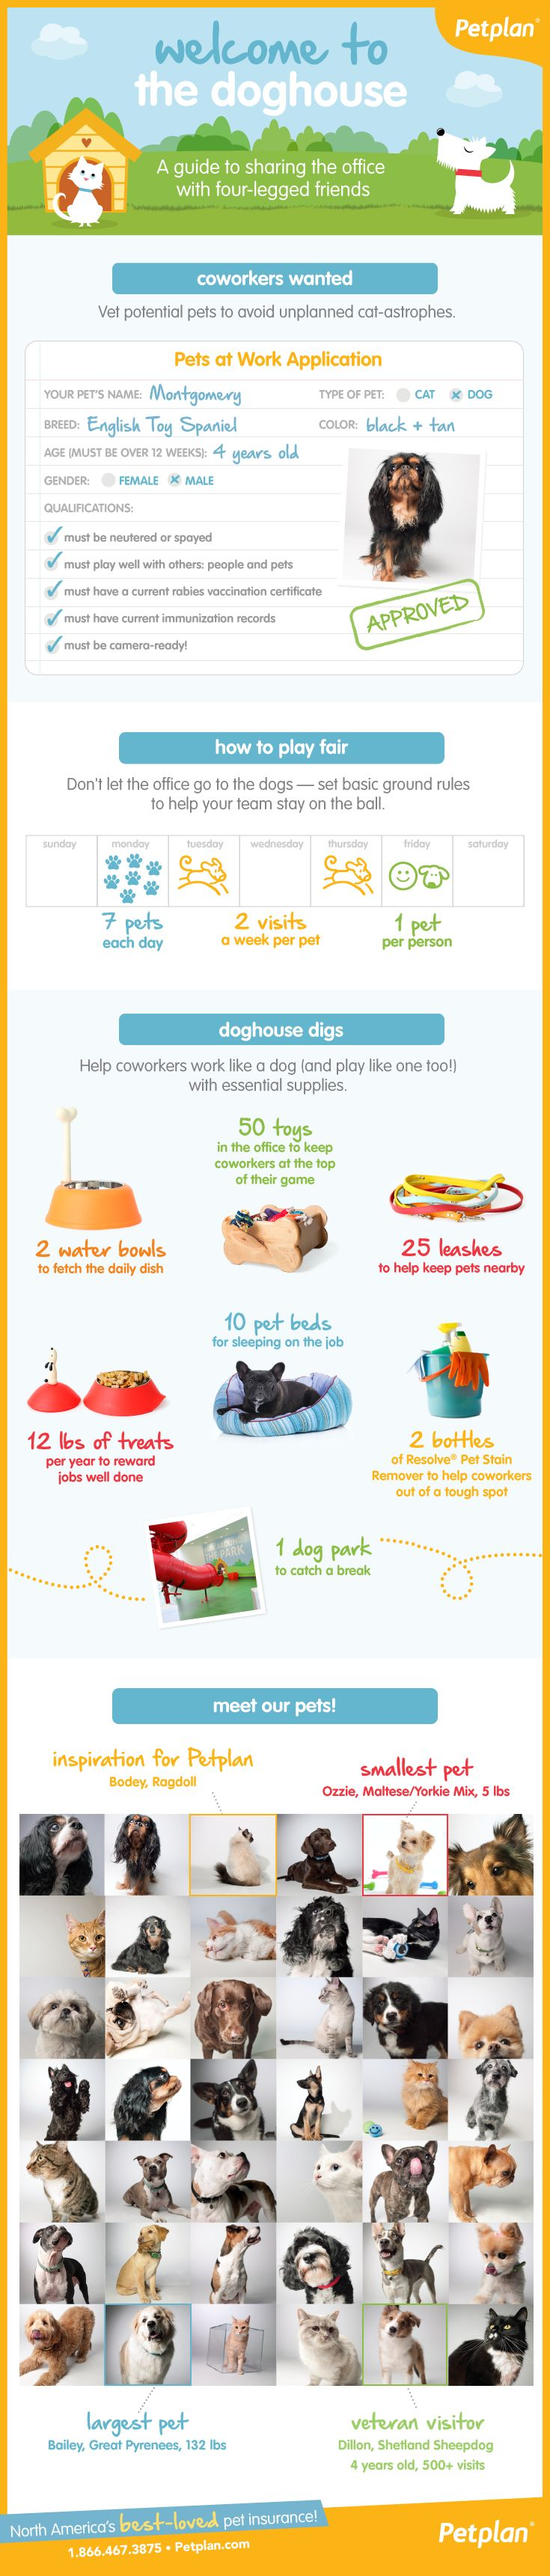 "Not Safe for Work: Petplan Reveals Top Take Your Pet to Work Day ""Faux Paws"" [Infographic]"